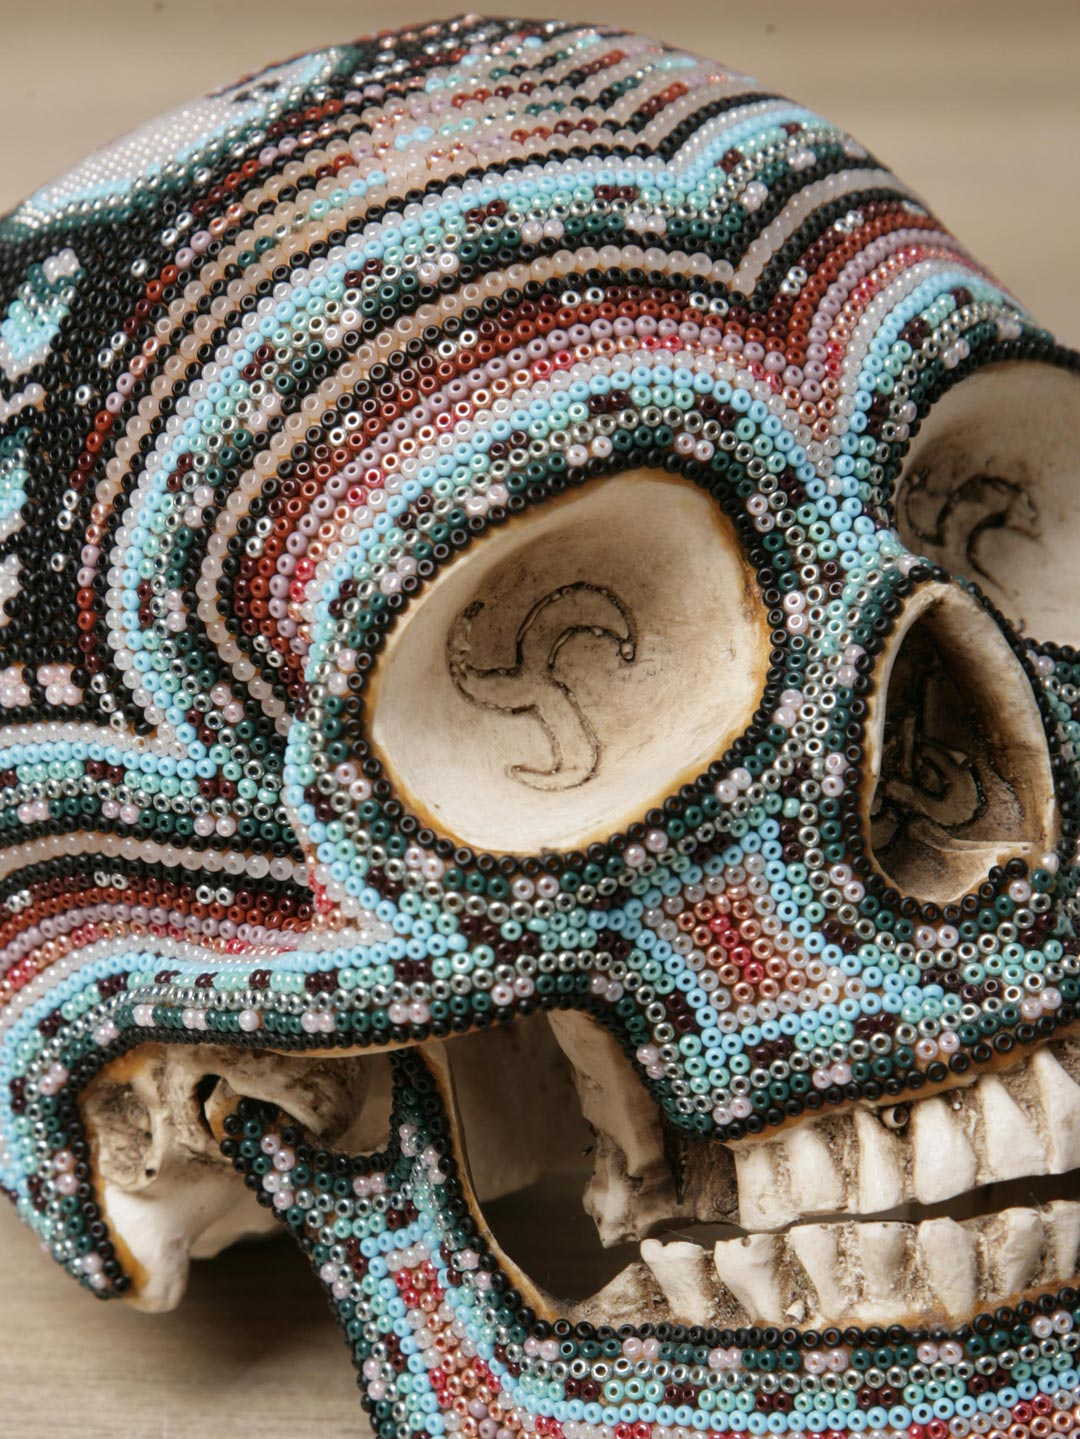 Beaded Skulls by Our Exquisite Corpse: our_exquisite_corpse_skulls_14_20111017_1417709181.jpg